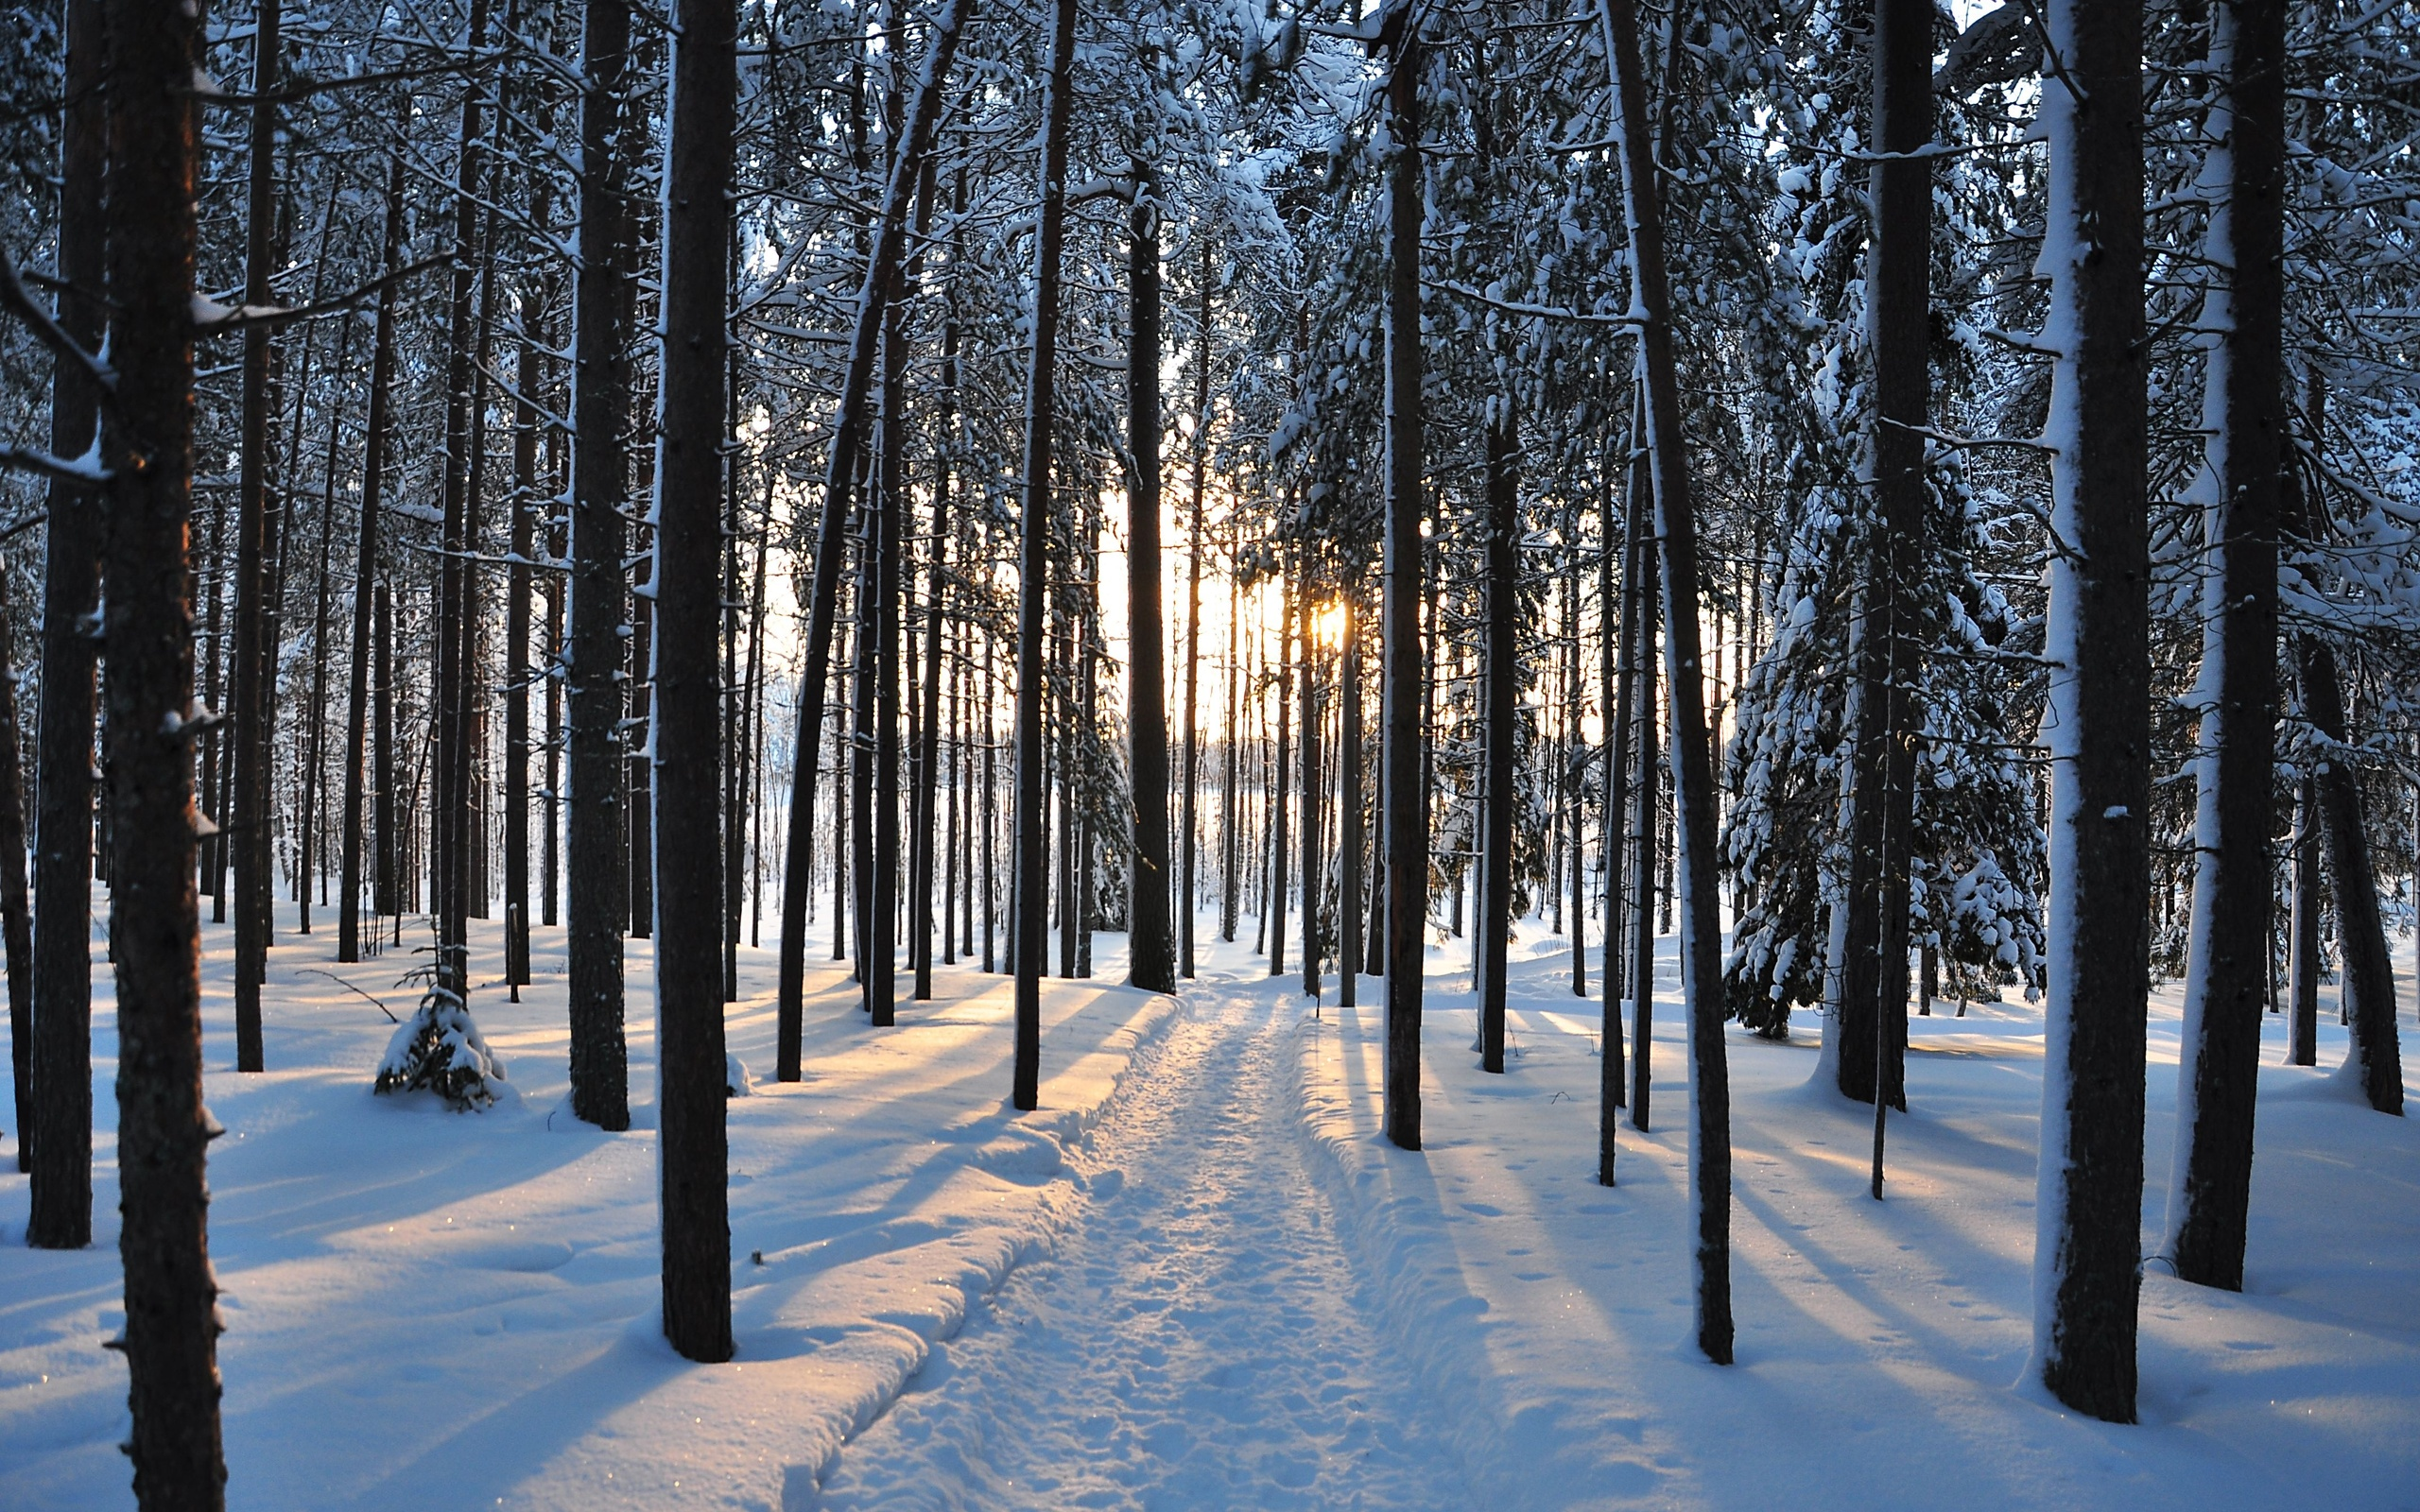 winter trees forest road nature landscape snow wallpaper